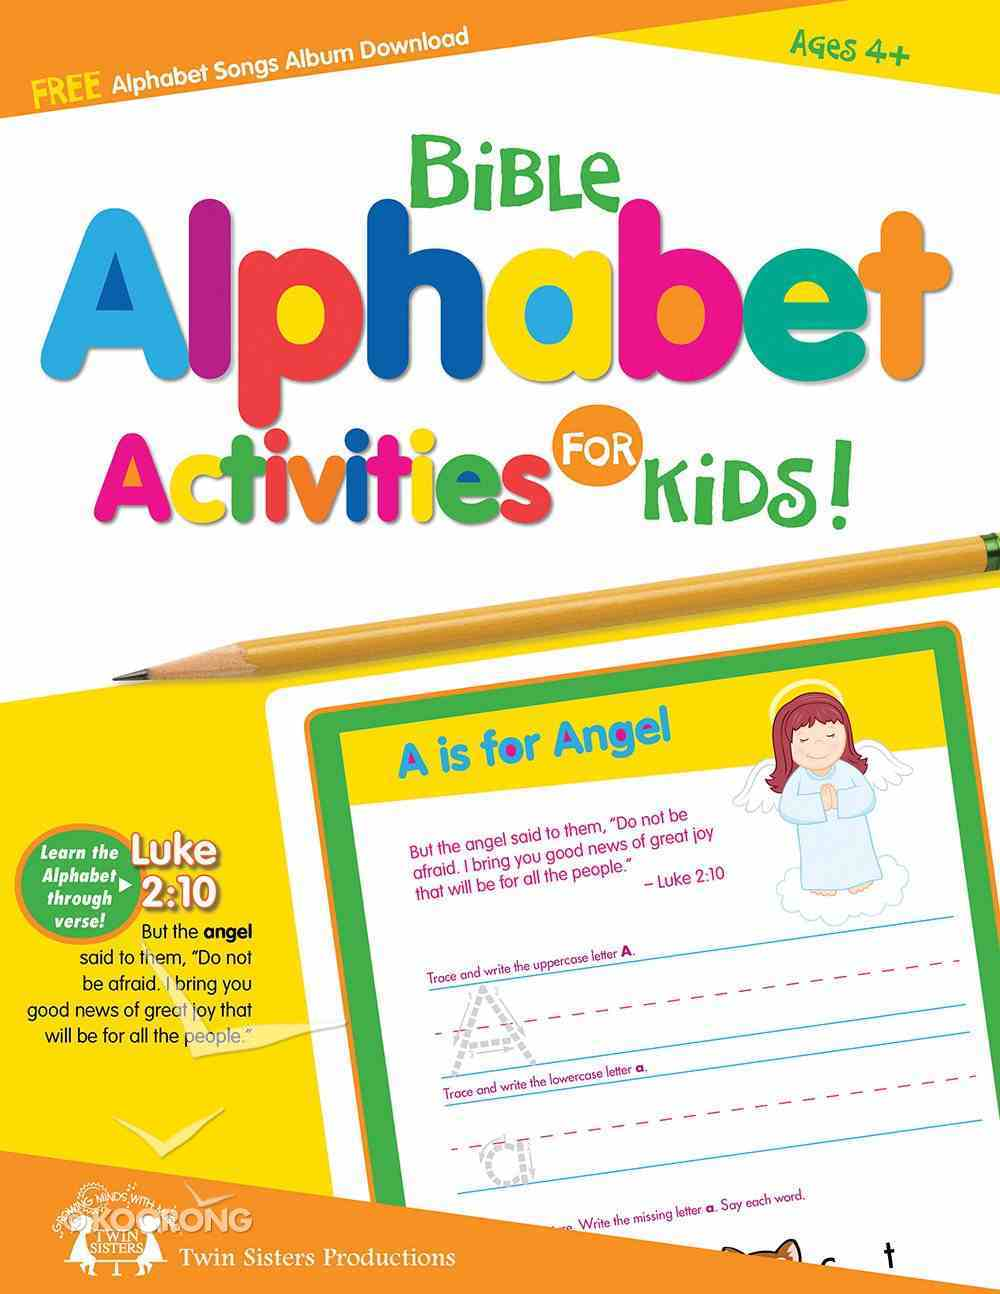 Bible Alphabet Activities For Kids Reproducible (Ages 4+) Paperback